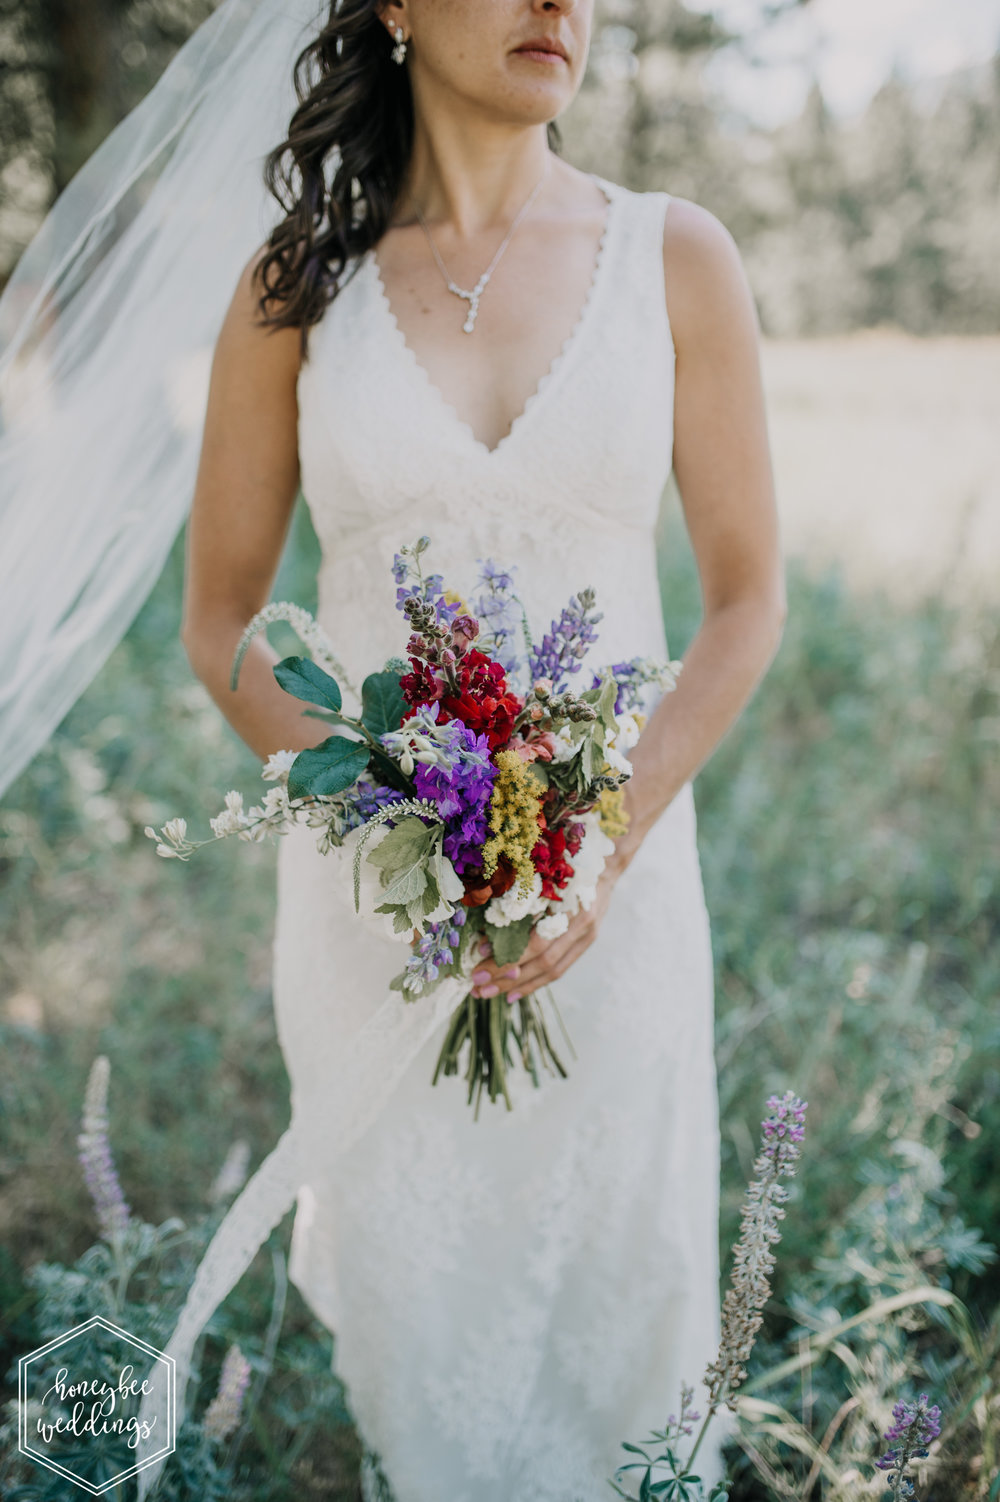 151 White Raven Wedding_Montana Wedding Photographer_Honeybee Weddings_ Meghan Maloney + Arza Hammond 2018-0094-2.jpg